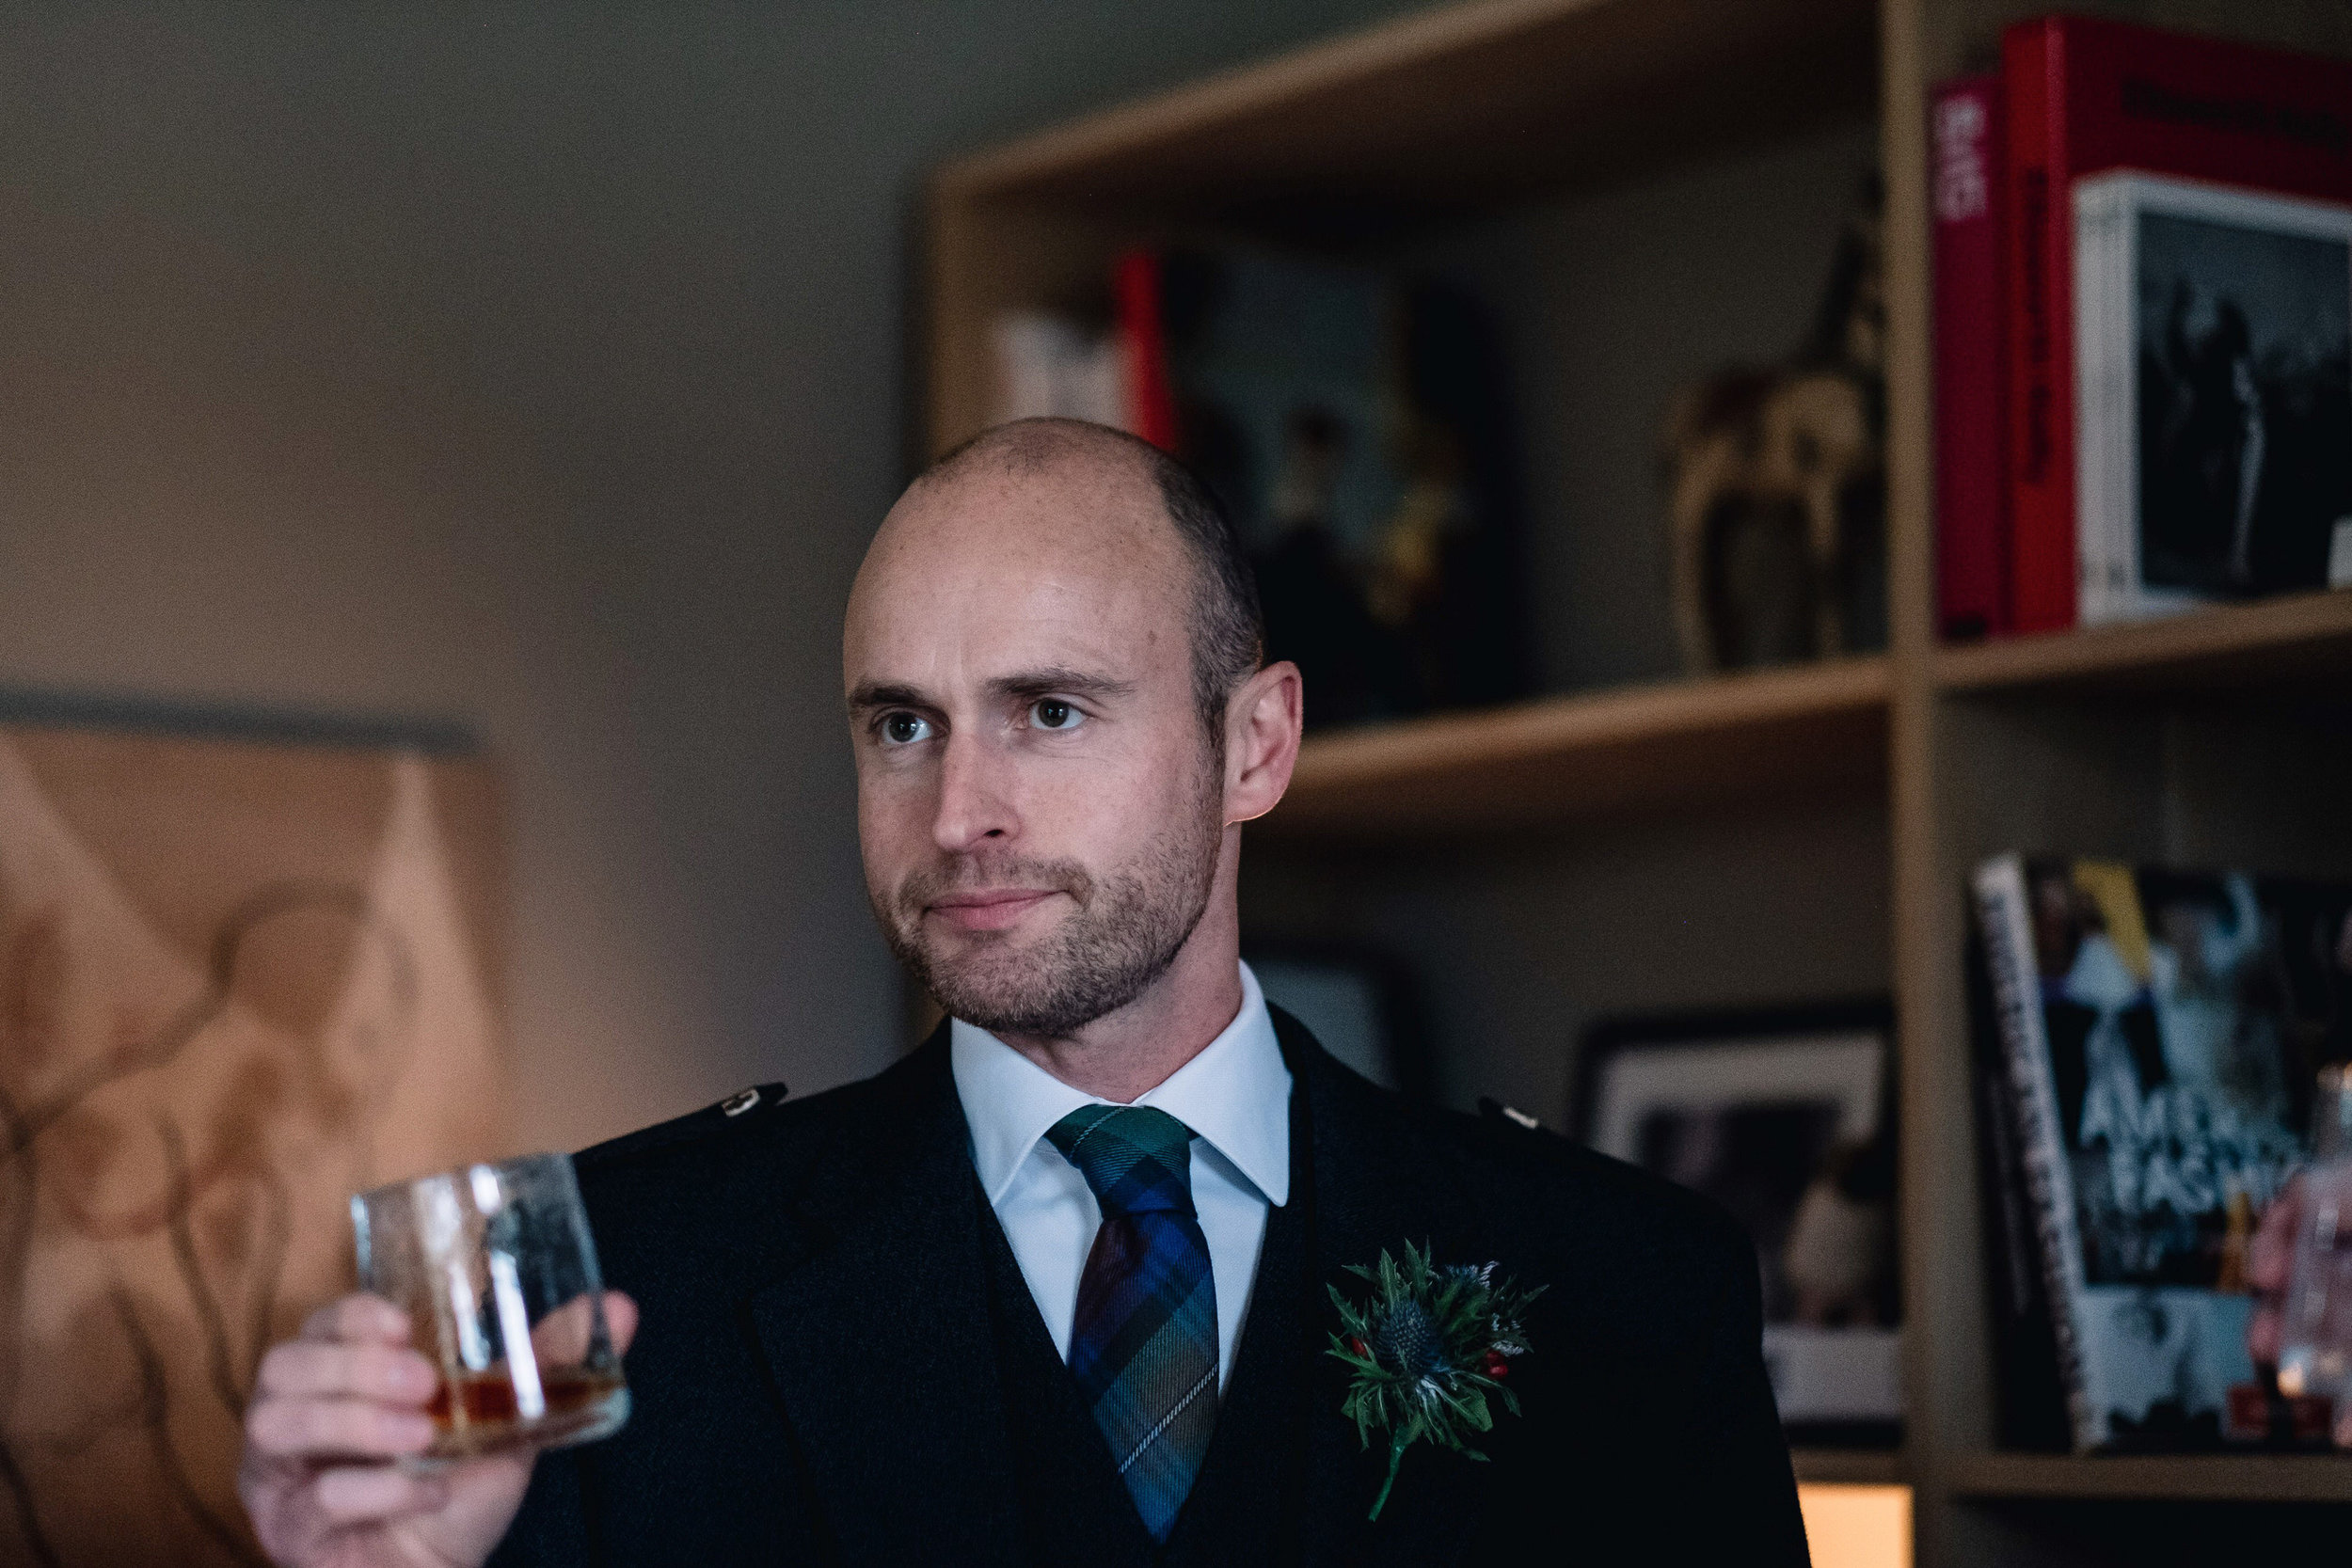 Grooms makes a toast